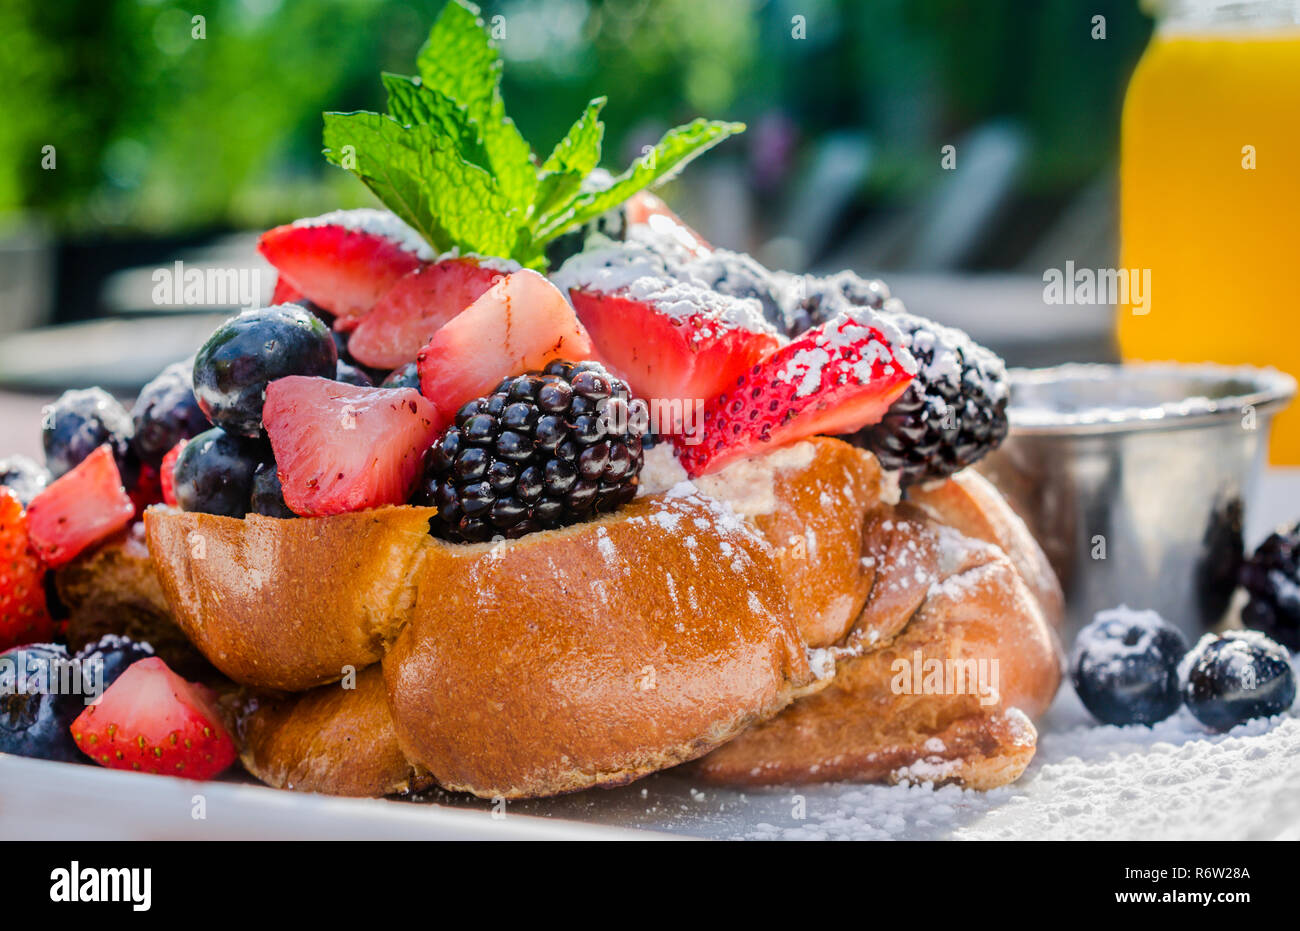 Challah French toast stuffed with honeyed ricotta, topped with fruit, powdered sugar, and maple syrup at Sun in My Belly Cafe in Atlanta, Georgia. Stock Photo